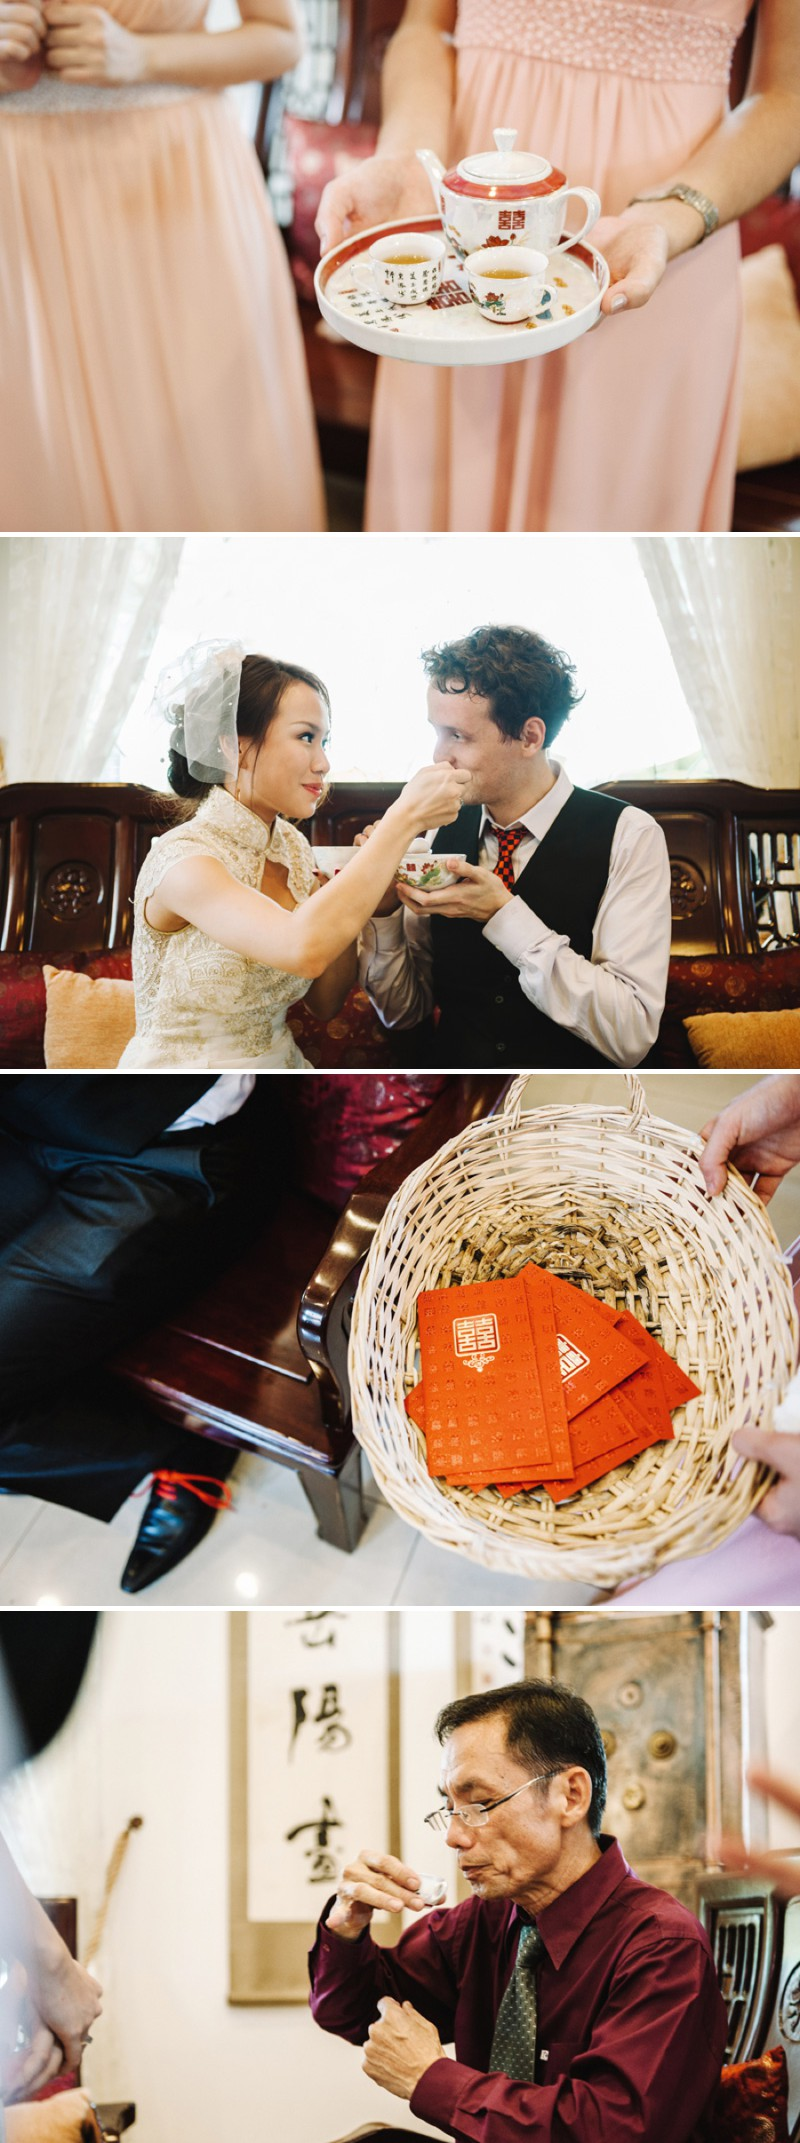 A Beautiful Destination Wedding In Singapore With A Pink And Orange Colour Scheme And A Traditional Chinese Tea Ceremony And White Florals Photographed By Ann-Kathrin Koch._0005